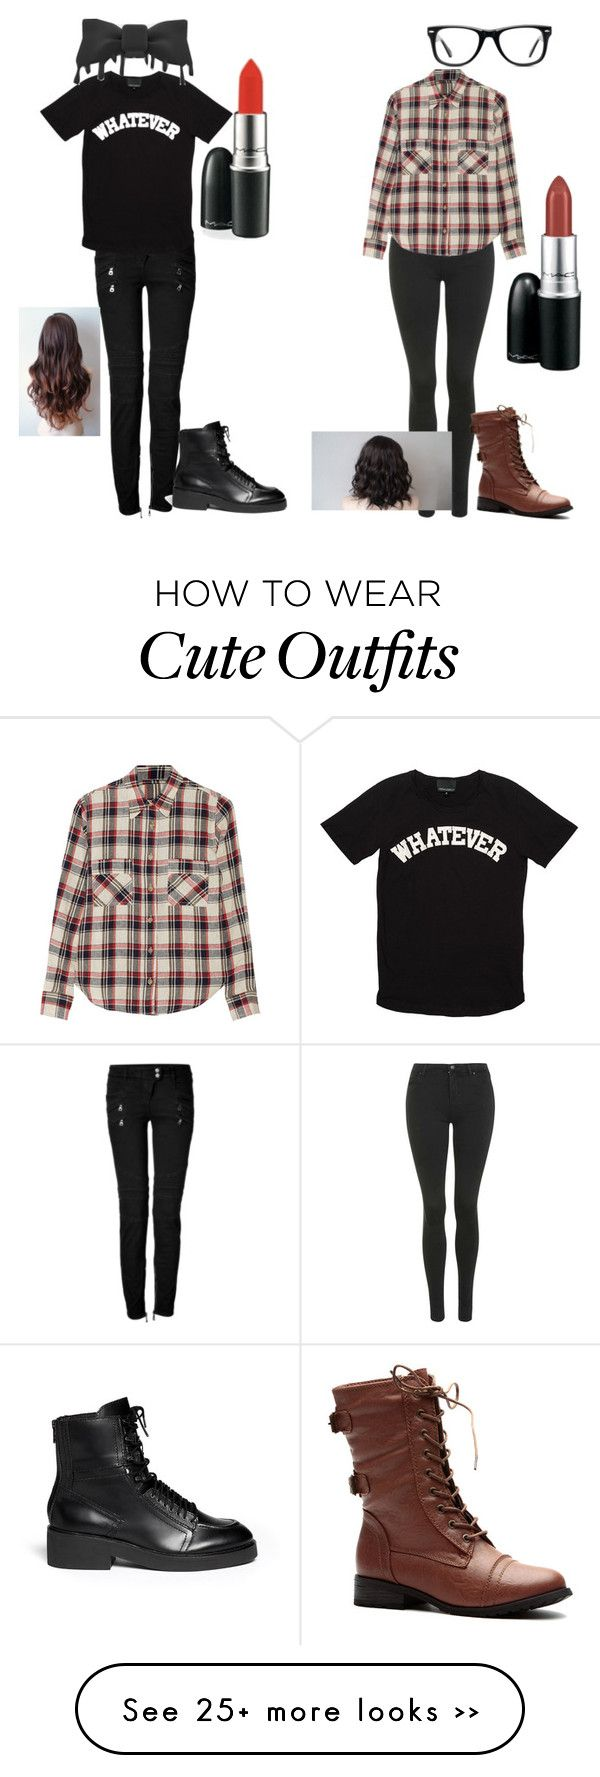 """DAN AND PHIL OUTFITS (BFF)"" by kyetorres on Polyvore"